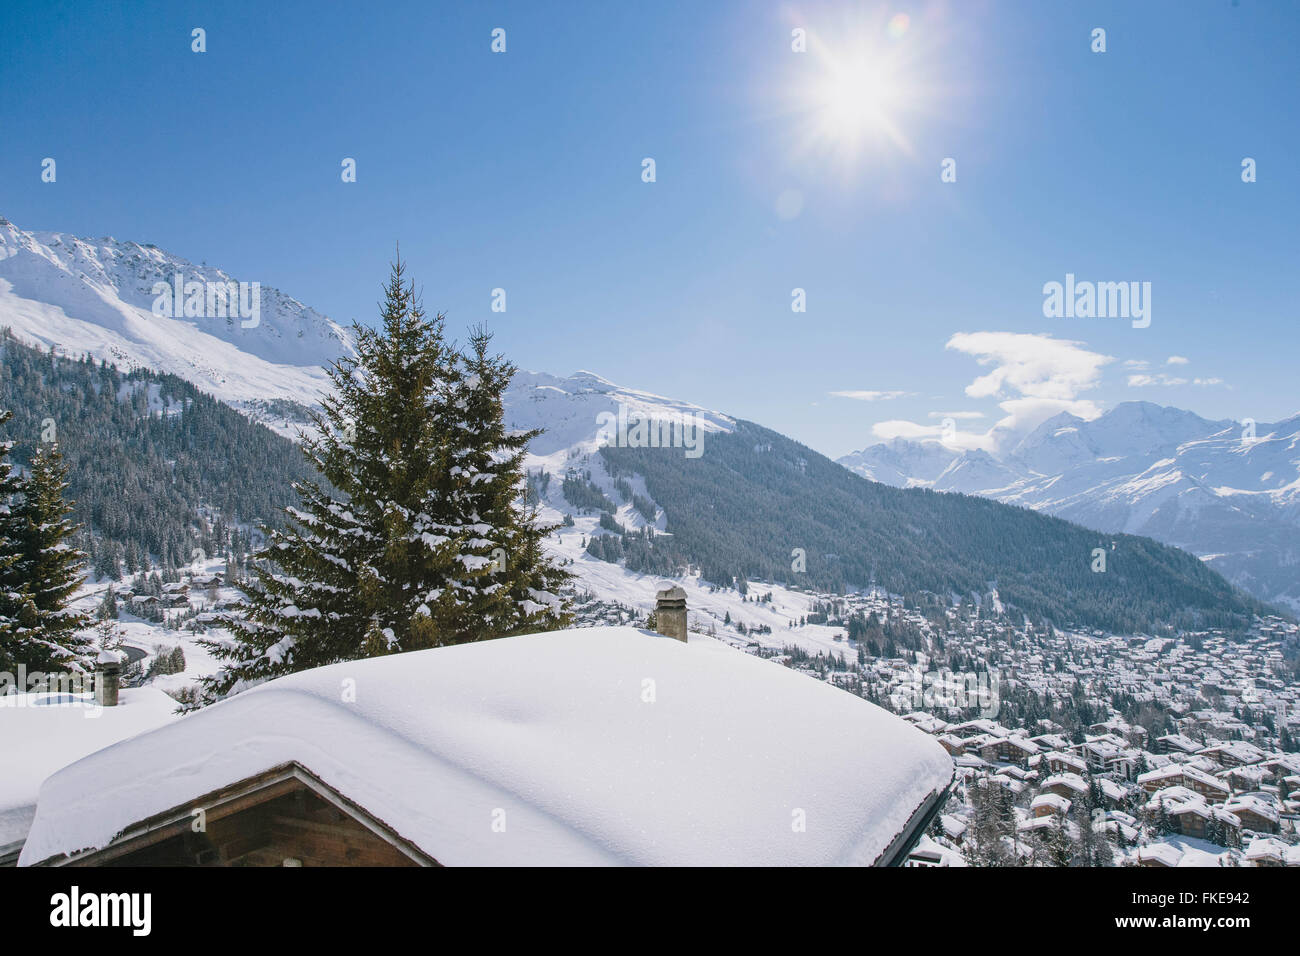 A view of the Swiss ski resort, Verbier. - Stock Image